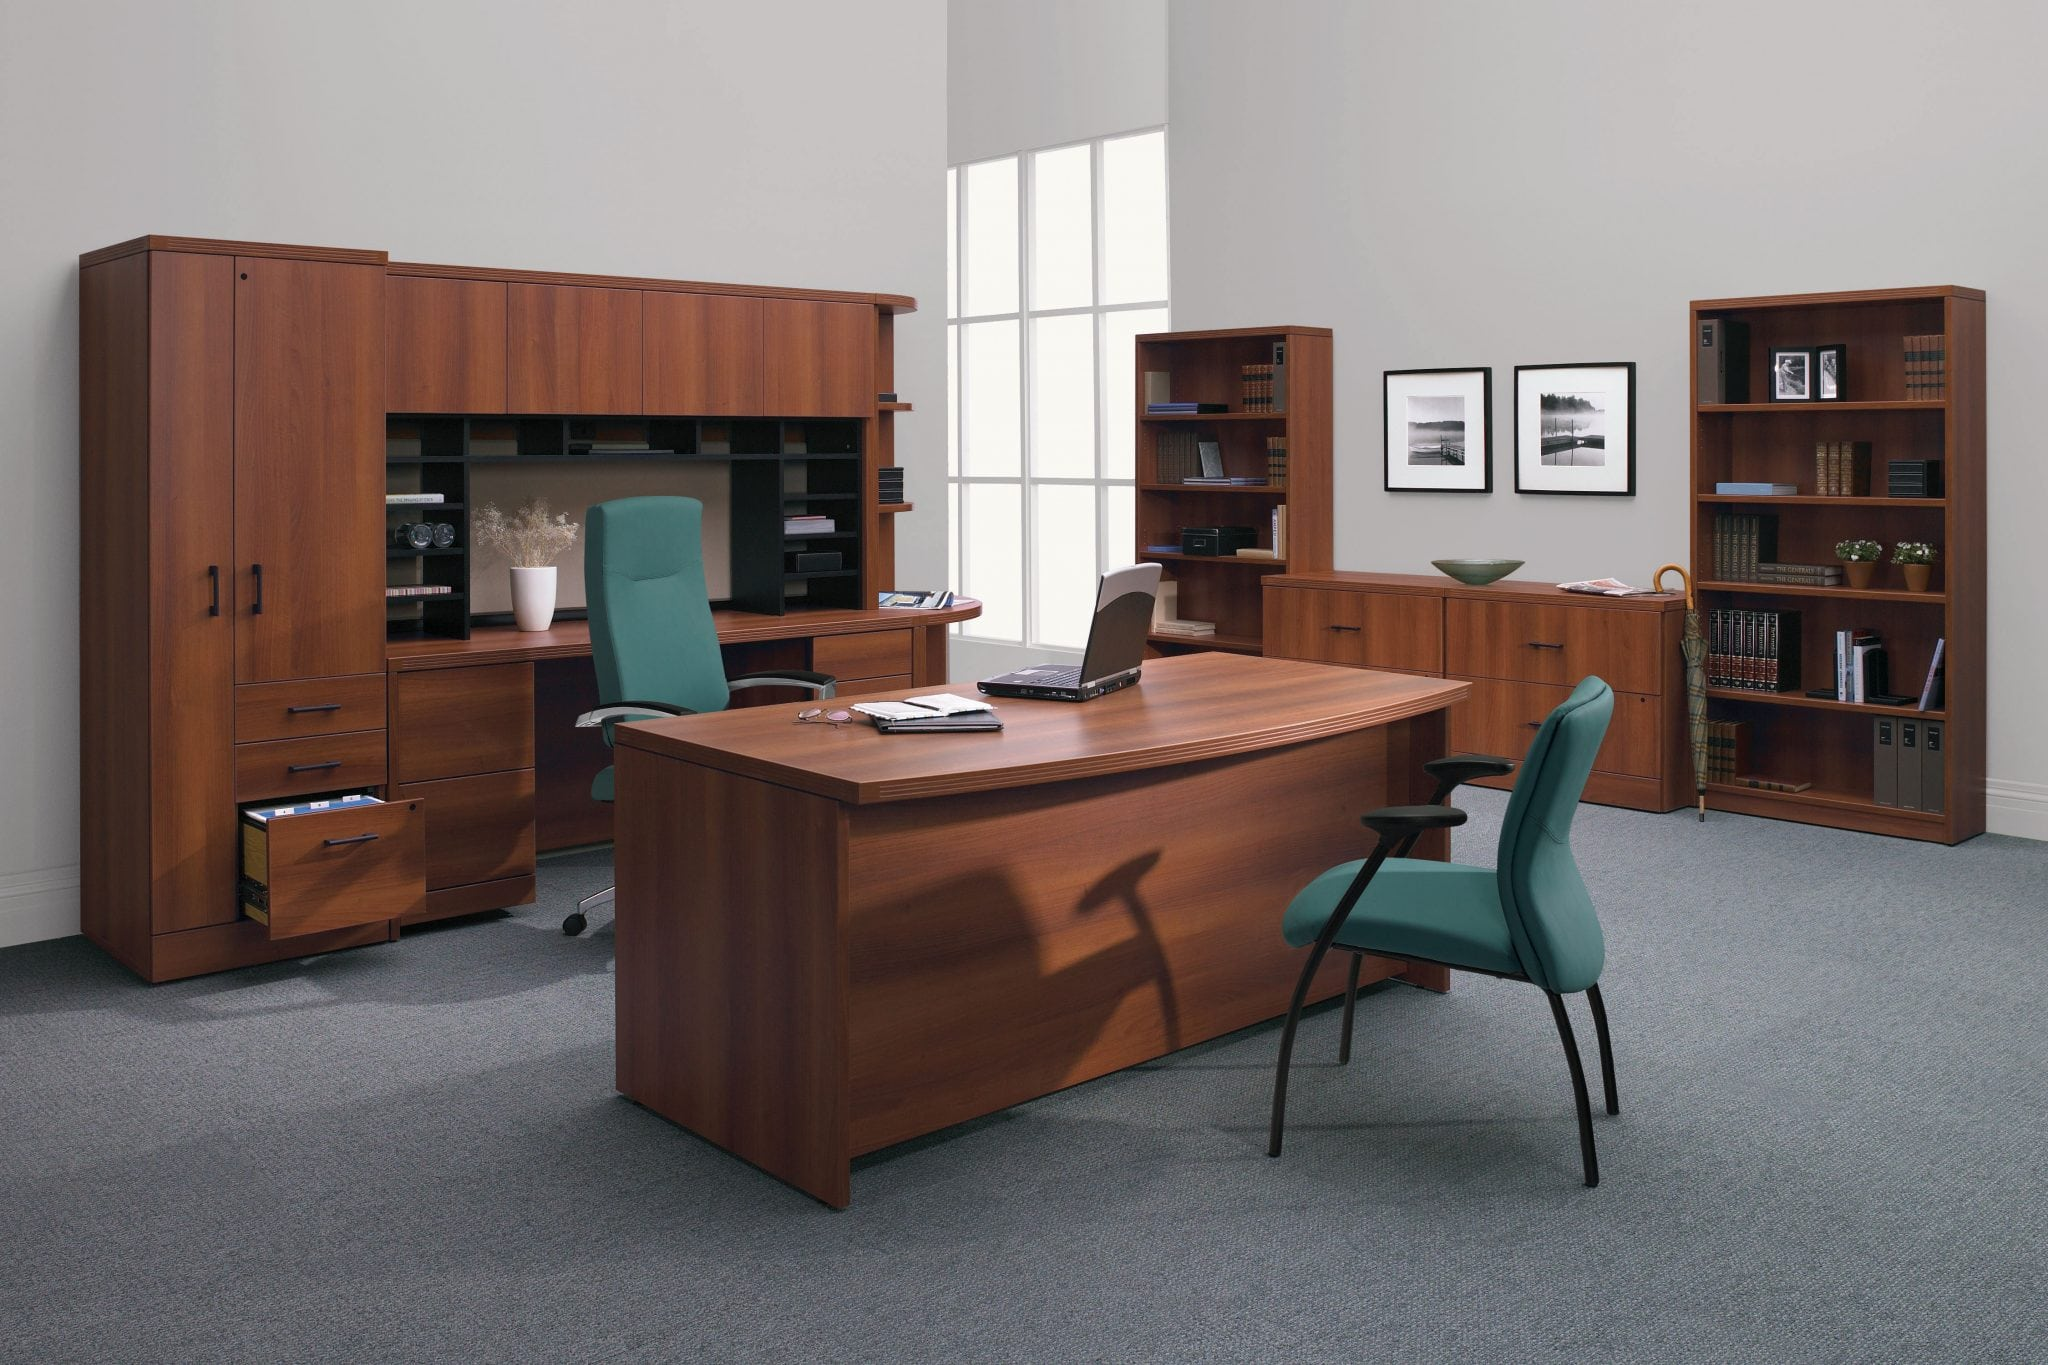 Correlation Executive Desk - Provides a variety of solutions to completely furnish the private office